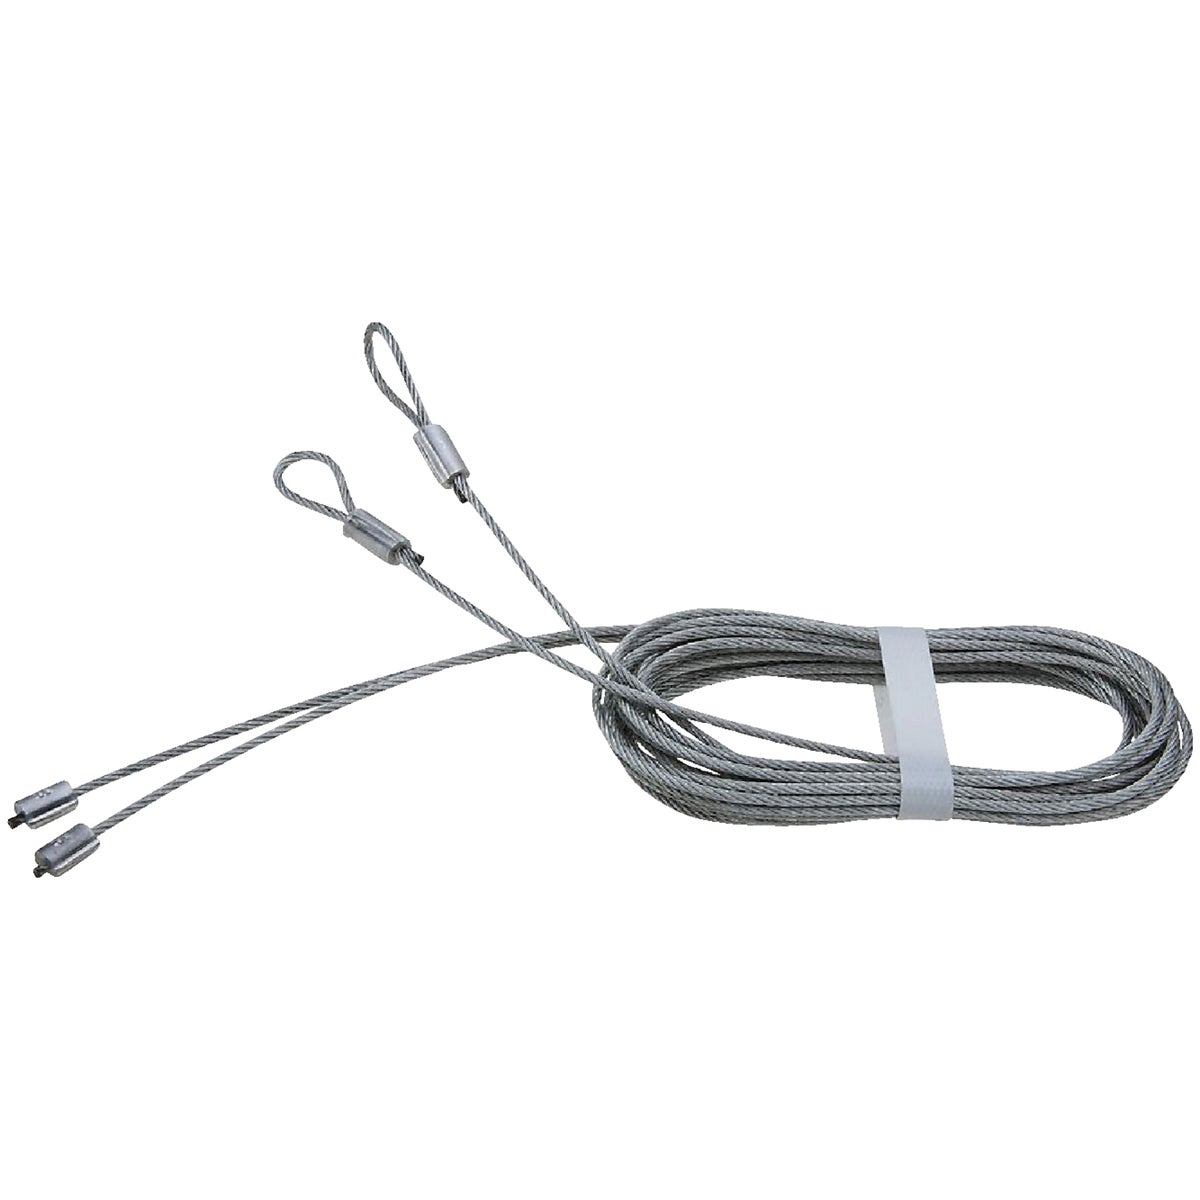 "8'8"" TORSION LIFT CABLE - N280347 by National Mfg Co"